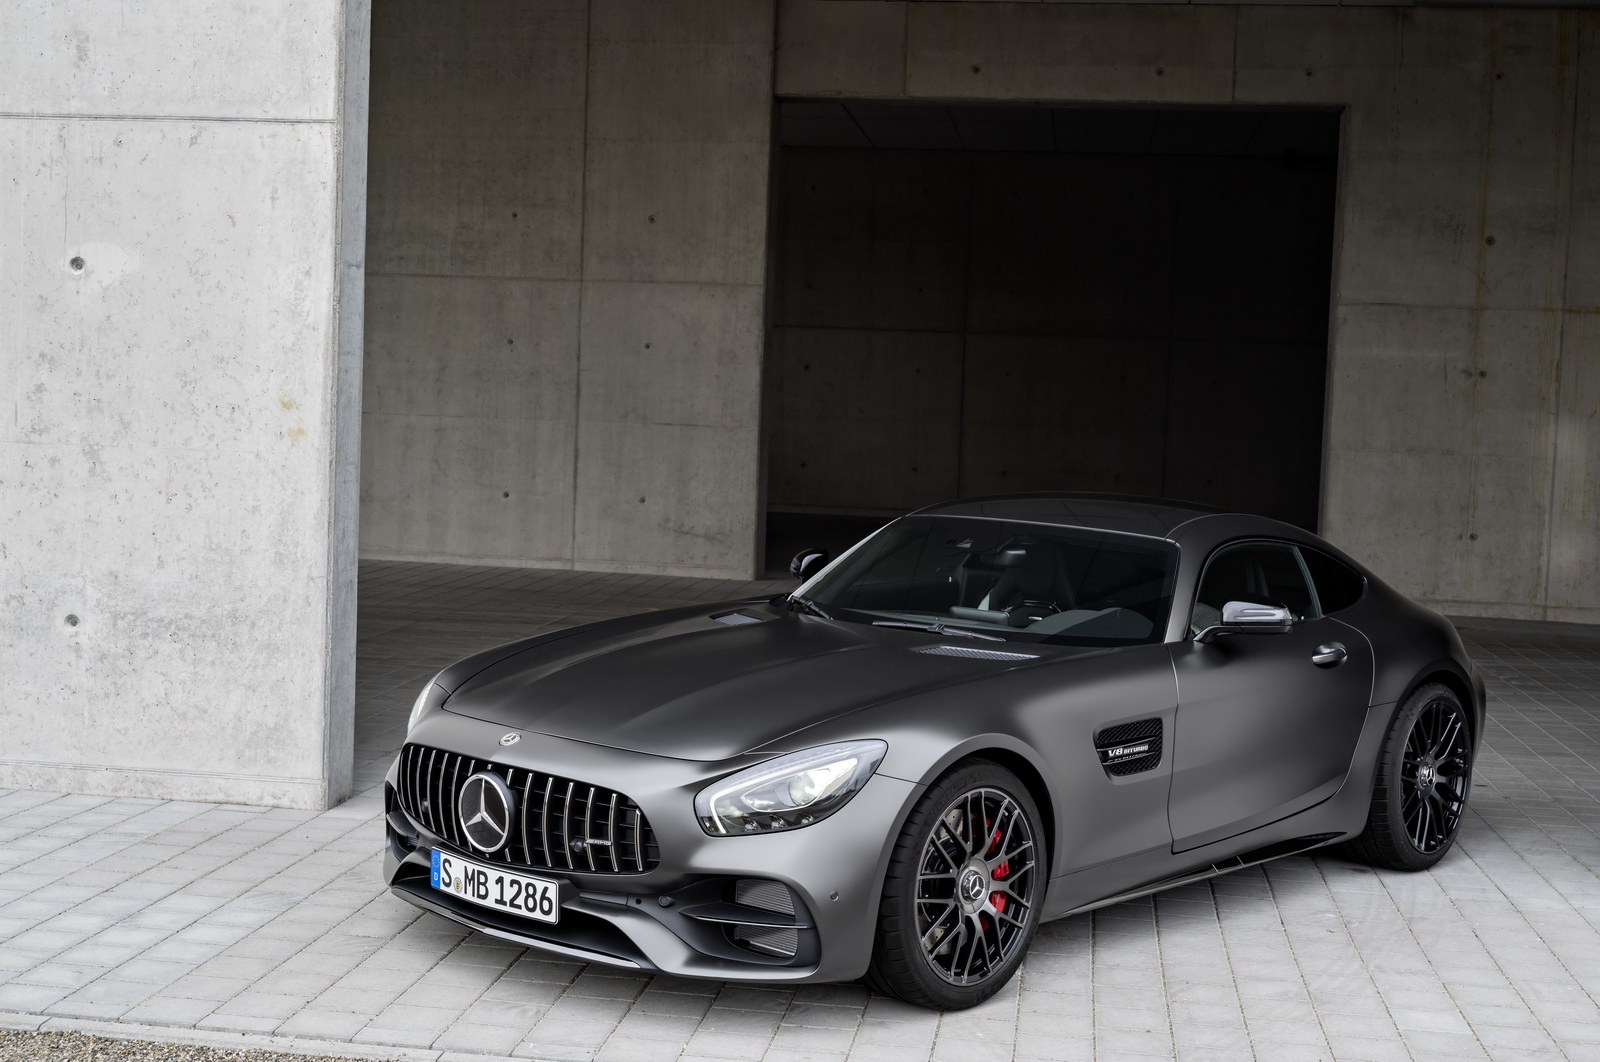 Mercedes-AMG GT C Edition 50, graphitgrau magno ;Kraftstoffverbrauch kombiniert: 11,3 l/100 km, CO2-Emissionen kombiniert: 257 g/kmMercedes-AMG GT C Edition 50, graphite grey magno; Fuel consumption combined:  11.3 l/100 km; Combined CO2 emissions: 257 g/km